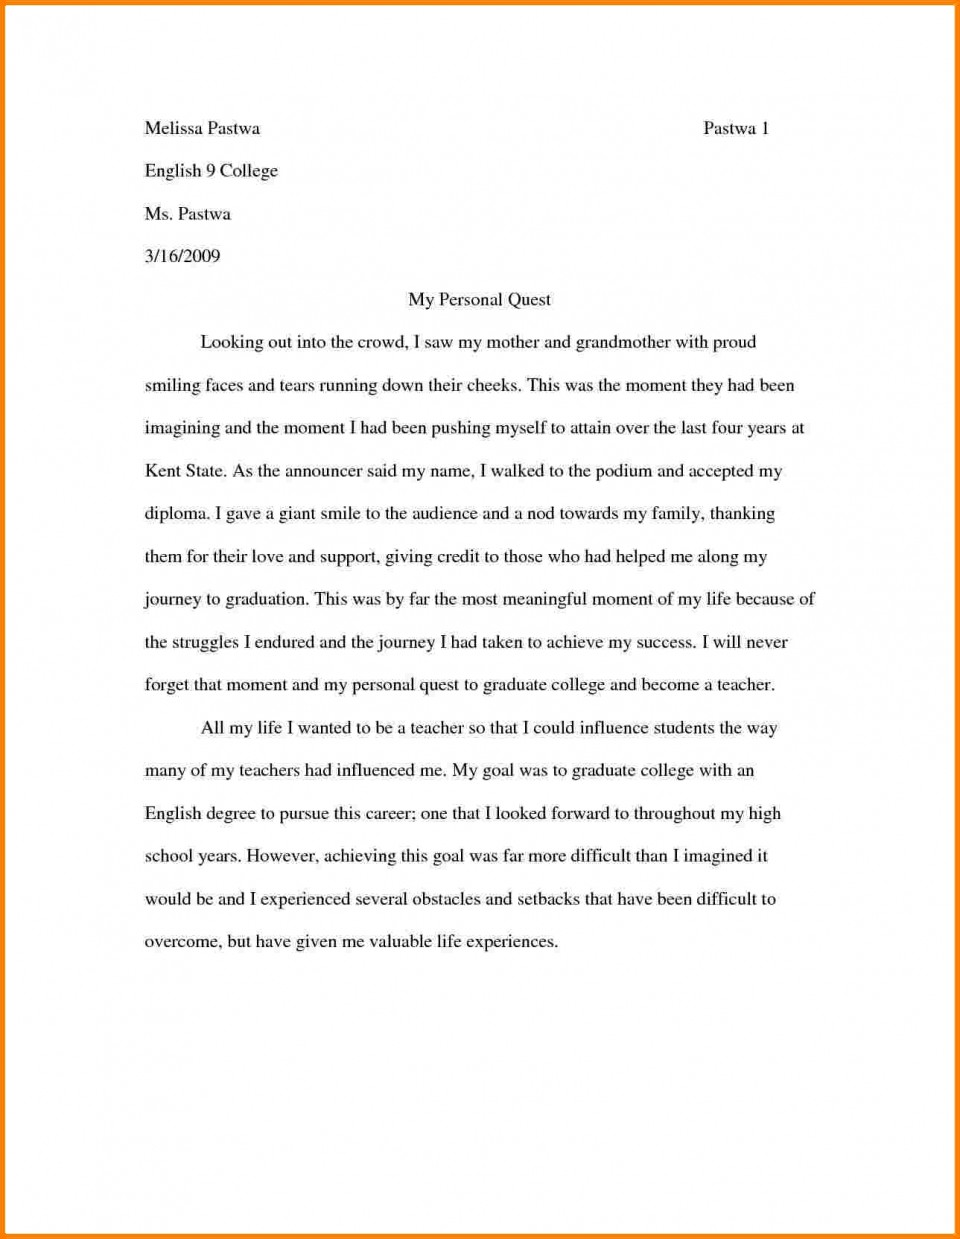 020 3341381556 How To Write Proposal20nt Essay Topics Buy Researchs Cheap Examples20 Good For Awesome Research Papers Topic College English Paper Interesting World History In 960